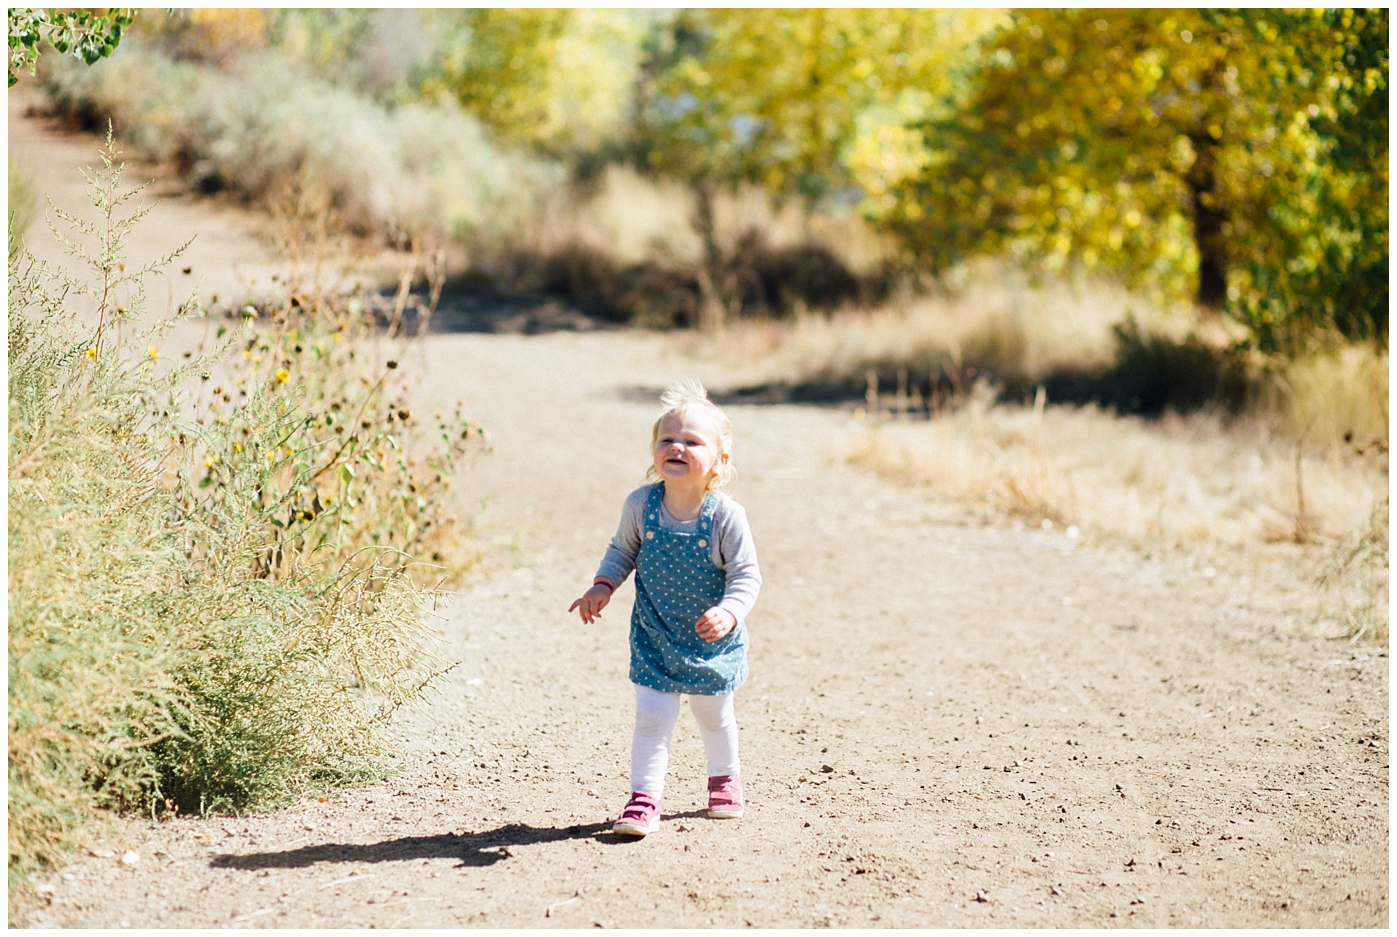 20161001Fall2016FishingEleanor012_-fort-collins-family-photographer.jpg